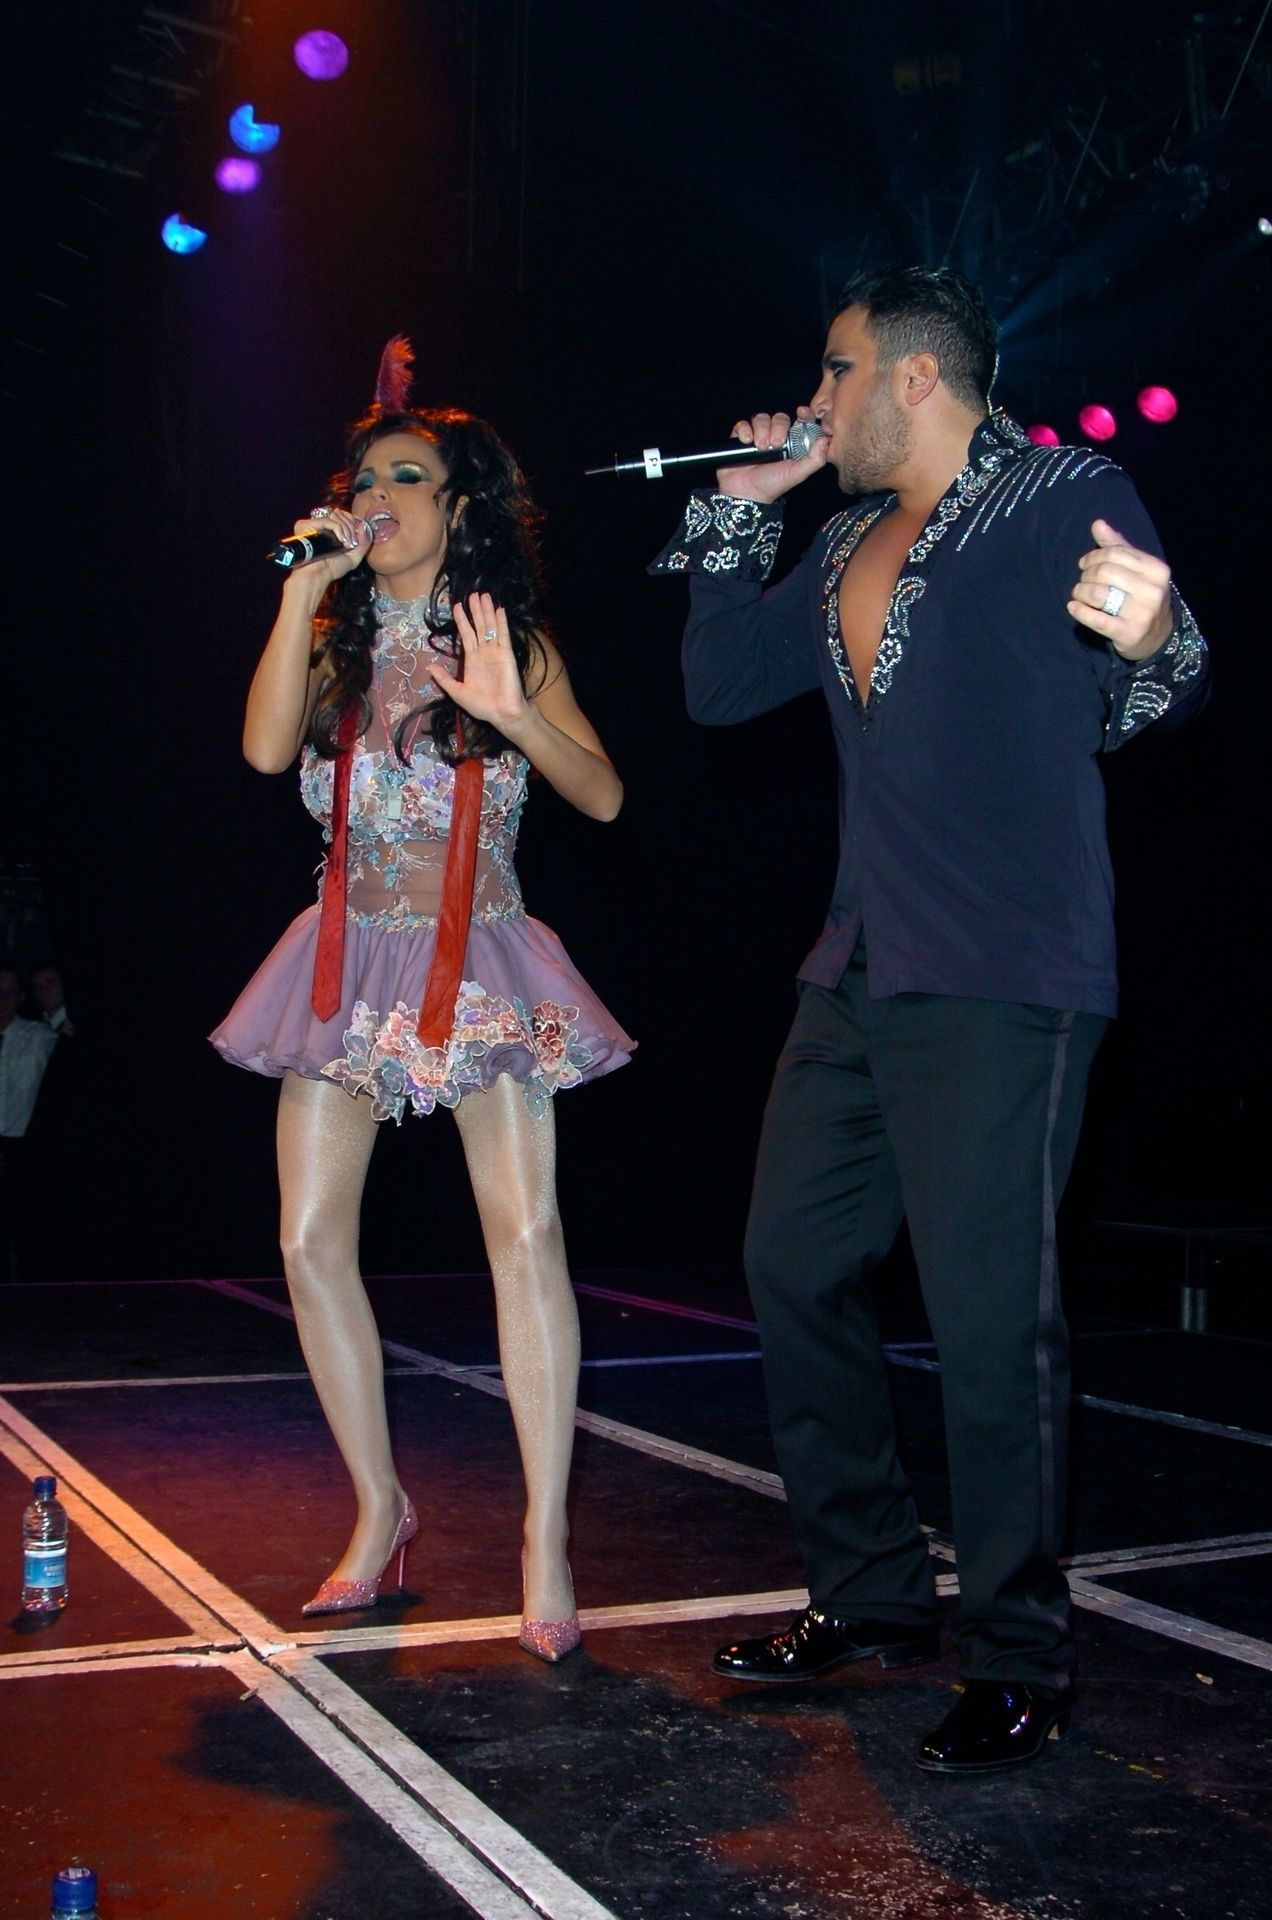 Katie Price & Peter Andre Perform At Gay Astoria In London 0020